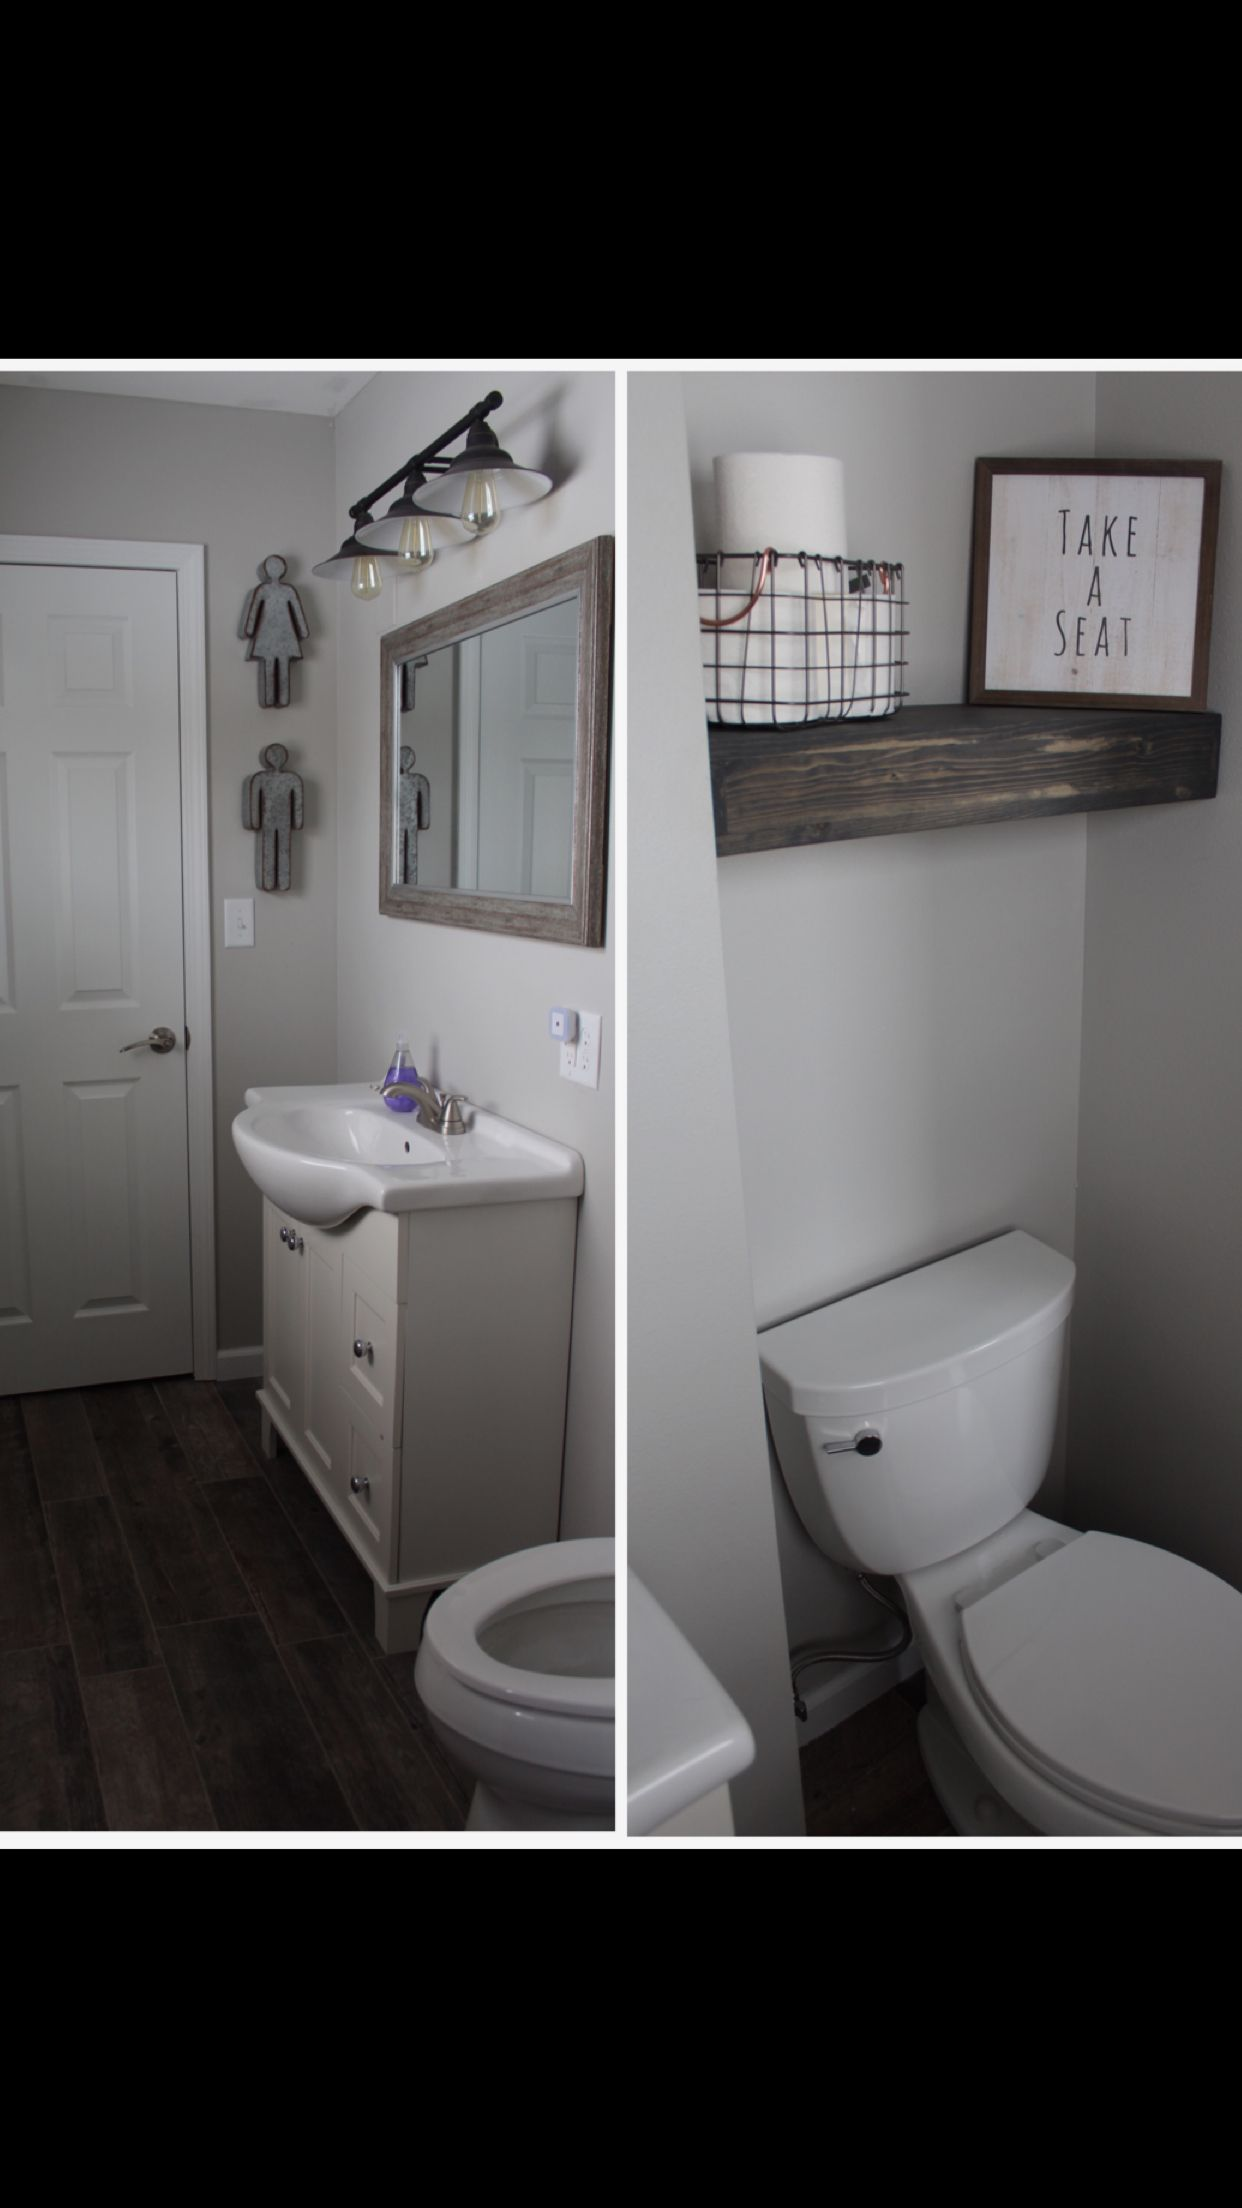 Rustic/Modern Bathroom with finds from hobby lobby, target ...